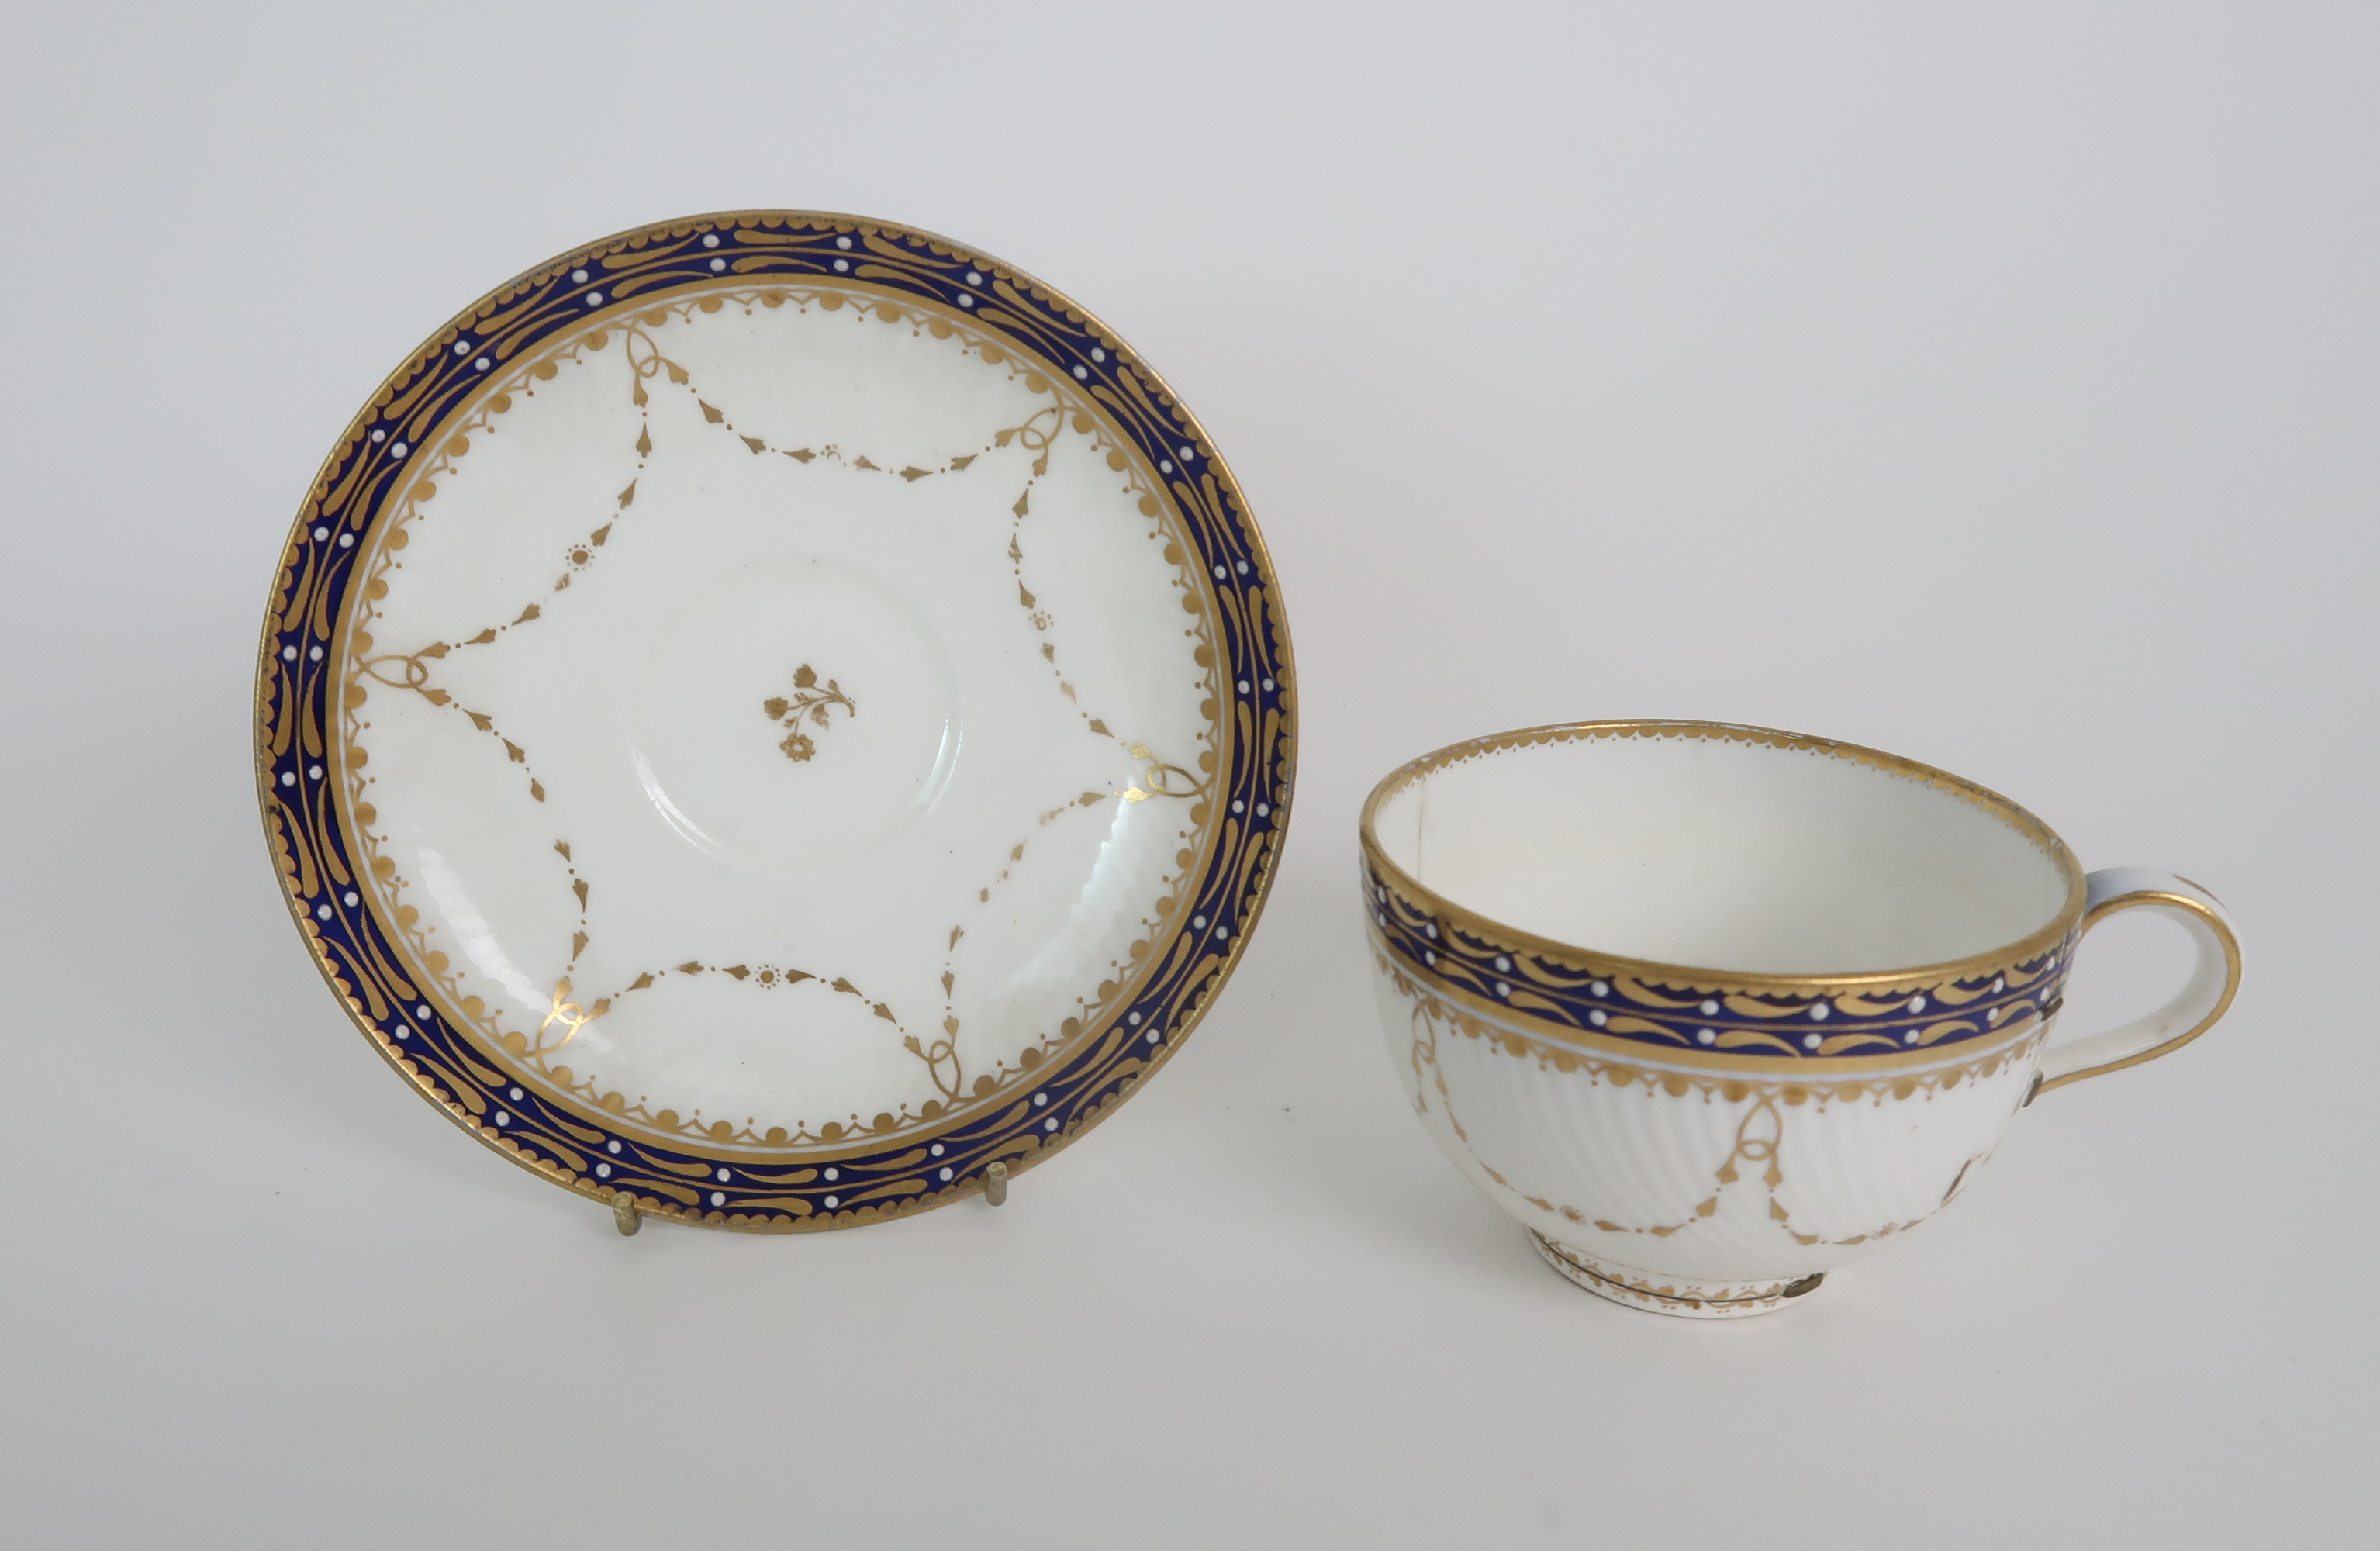 A COLLECTION OF 19TH CENTURY ENGLISH BLUE AND GILT DECORATED TEA AND COFFEE WARES including a - Image 17 of 23